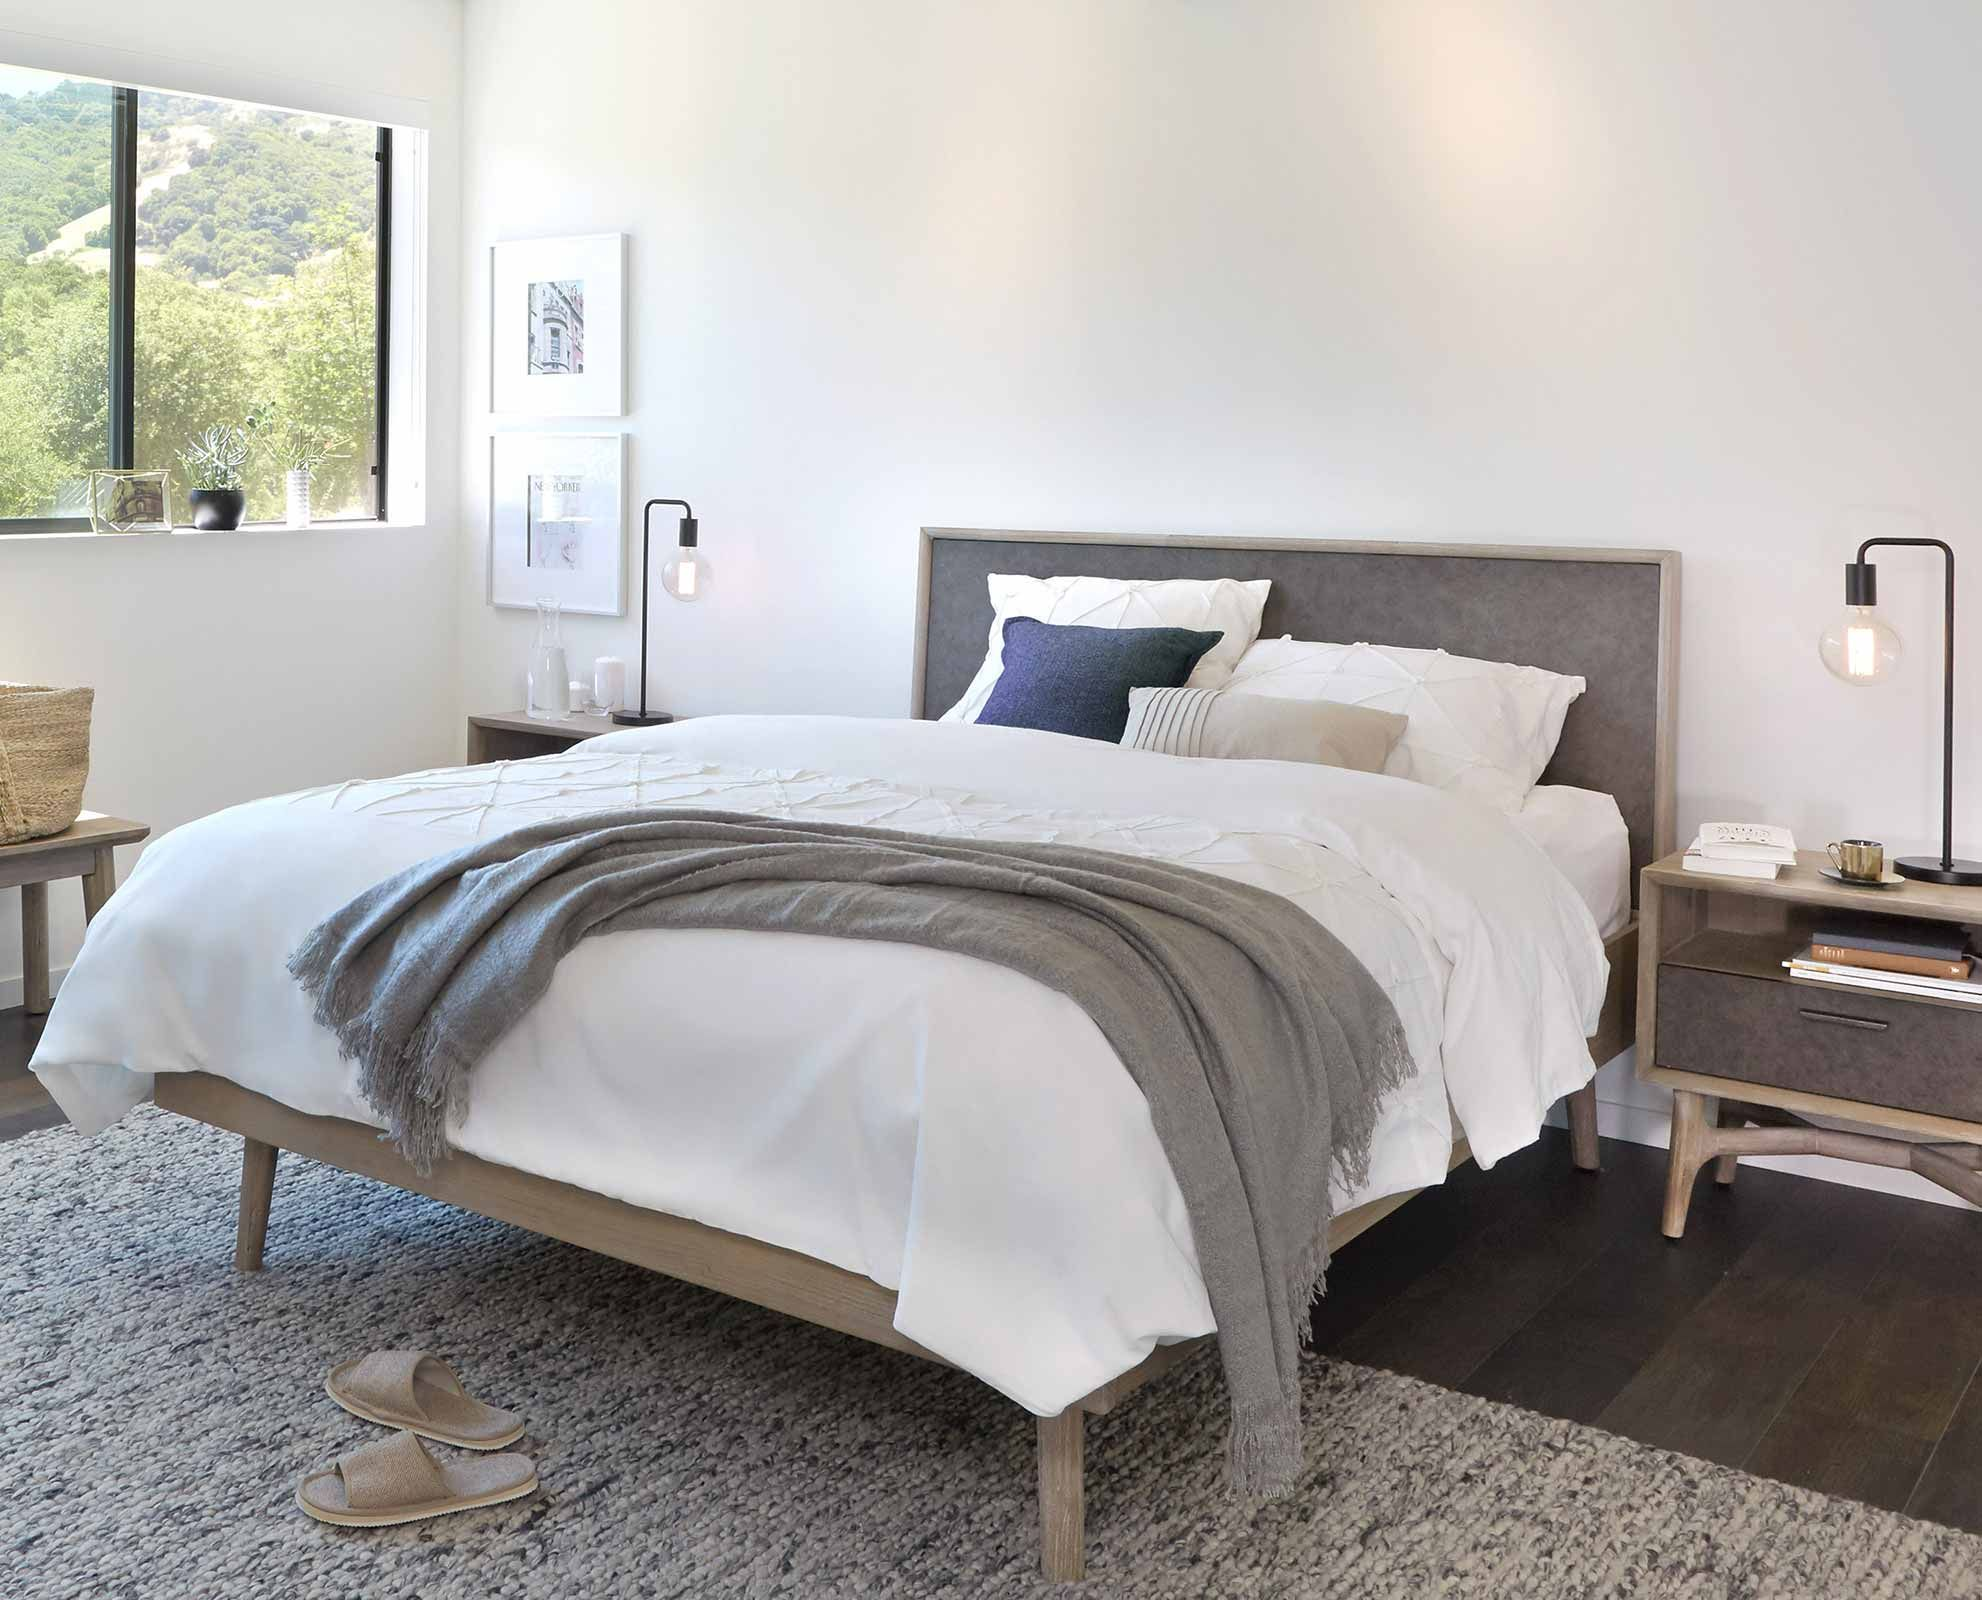 Owen Bed By Scandinavian Designs The Owen Bed Is Notably Handsome By Nature With A Two Tone Neutral Color Living Room Furniture Sofas Furniture Bedroom Design